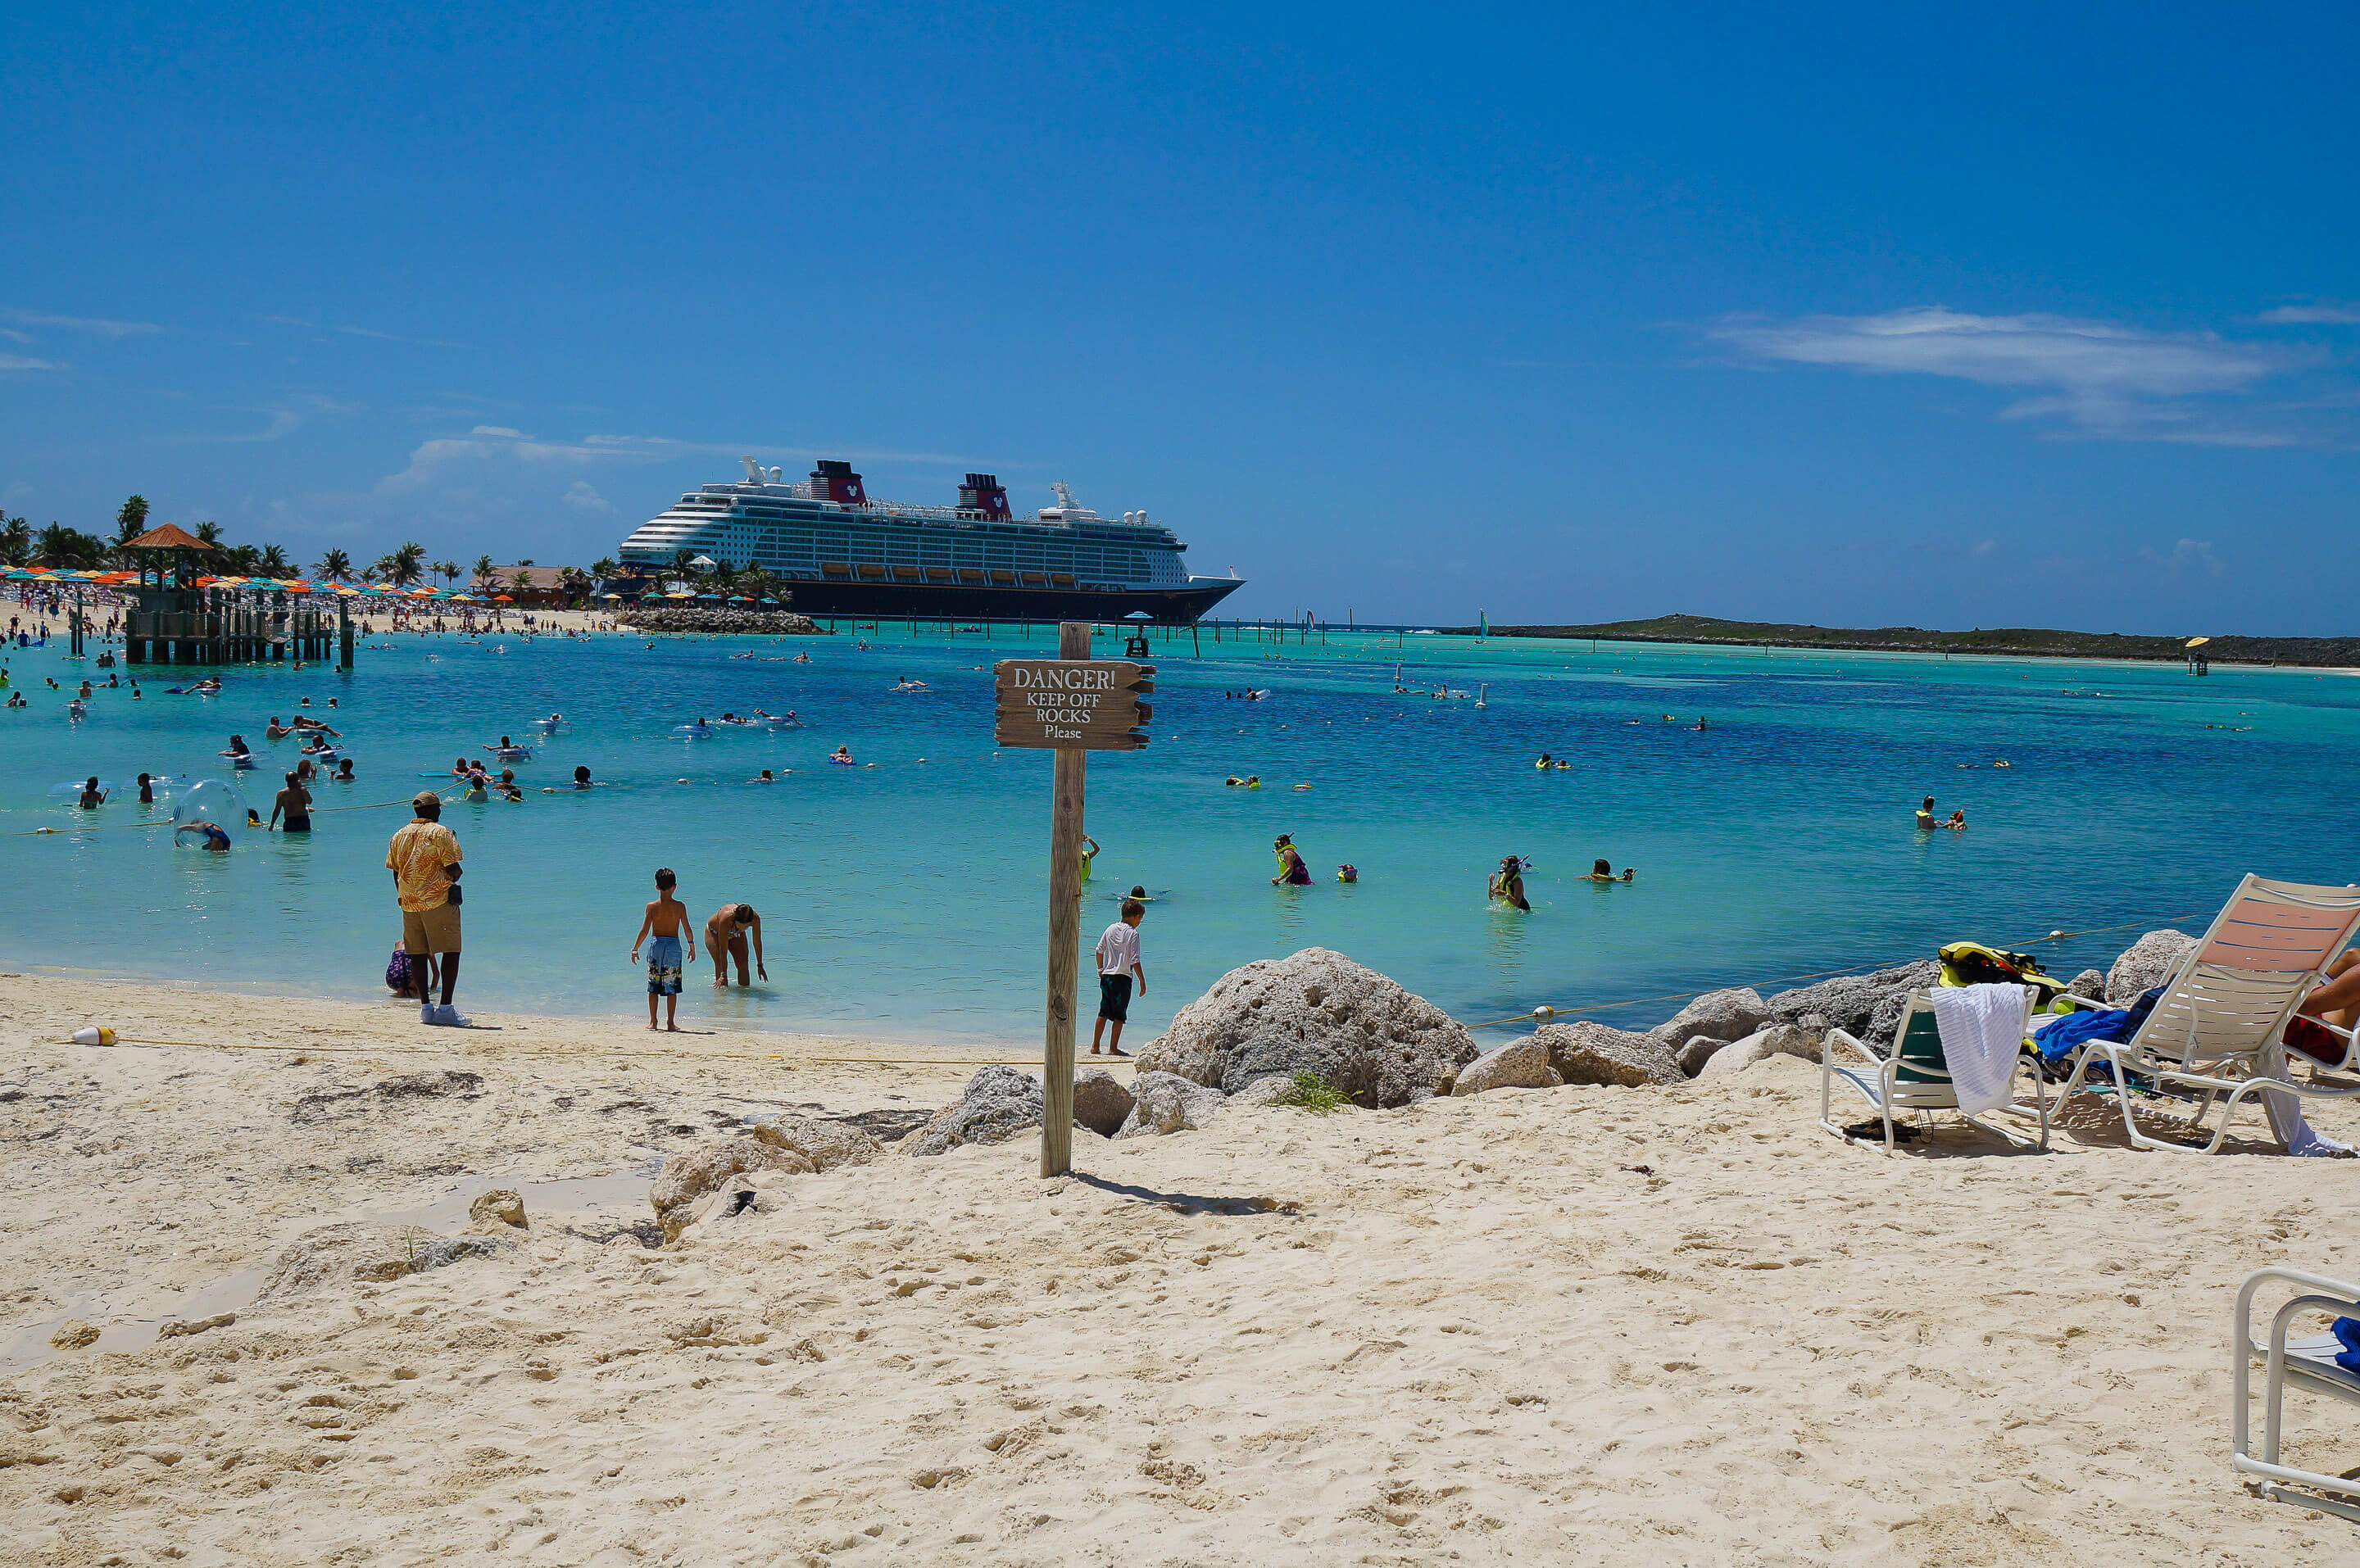 Passenger found dead on Disney Castaway Cay